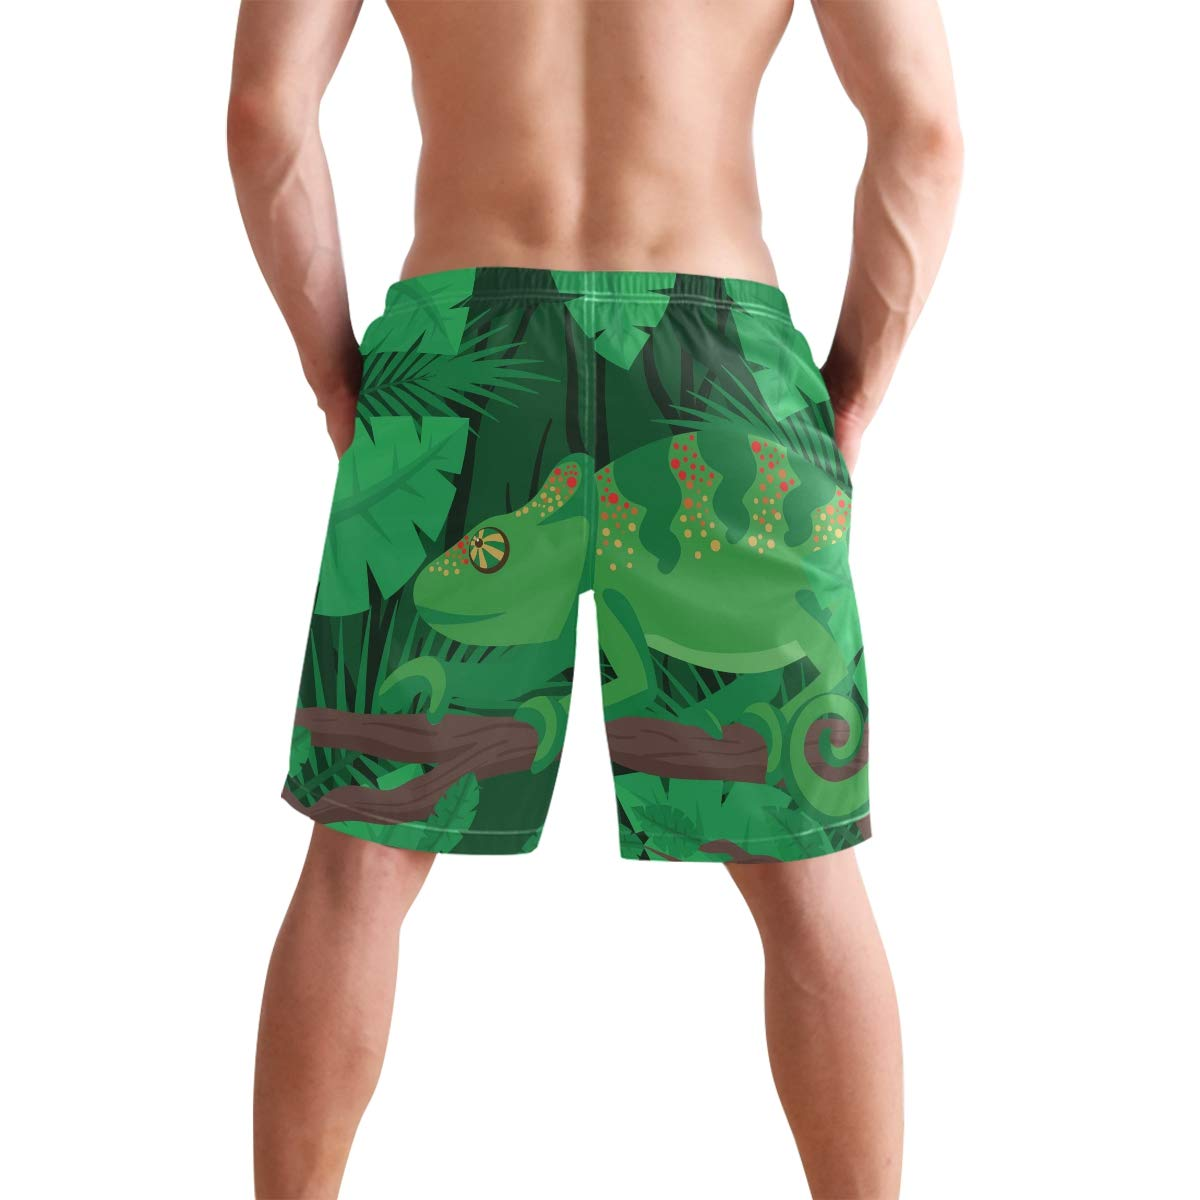 Fashion Chameleon with Forest Shorts Mens Swim Trunks Boardshorts Quick Dry Swimwear with Mesh Lining//Pockets